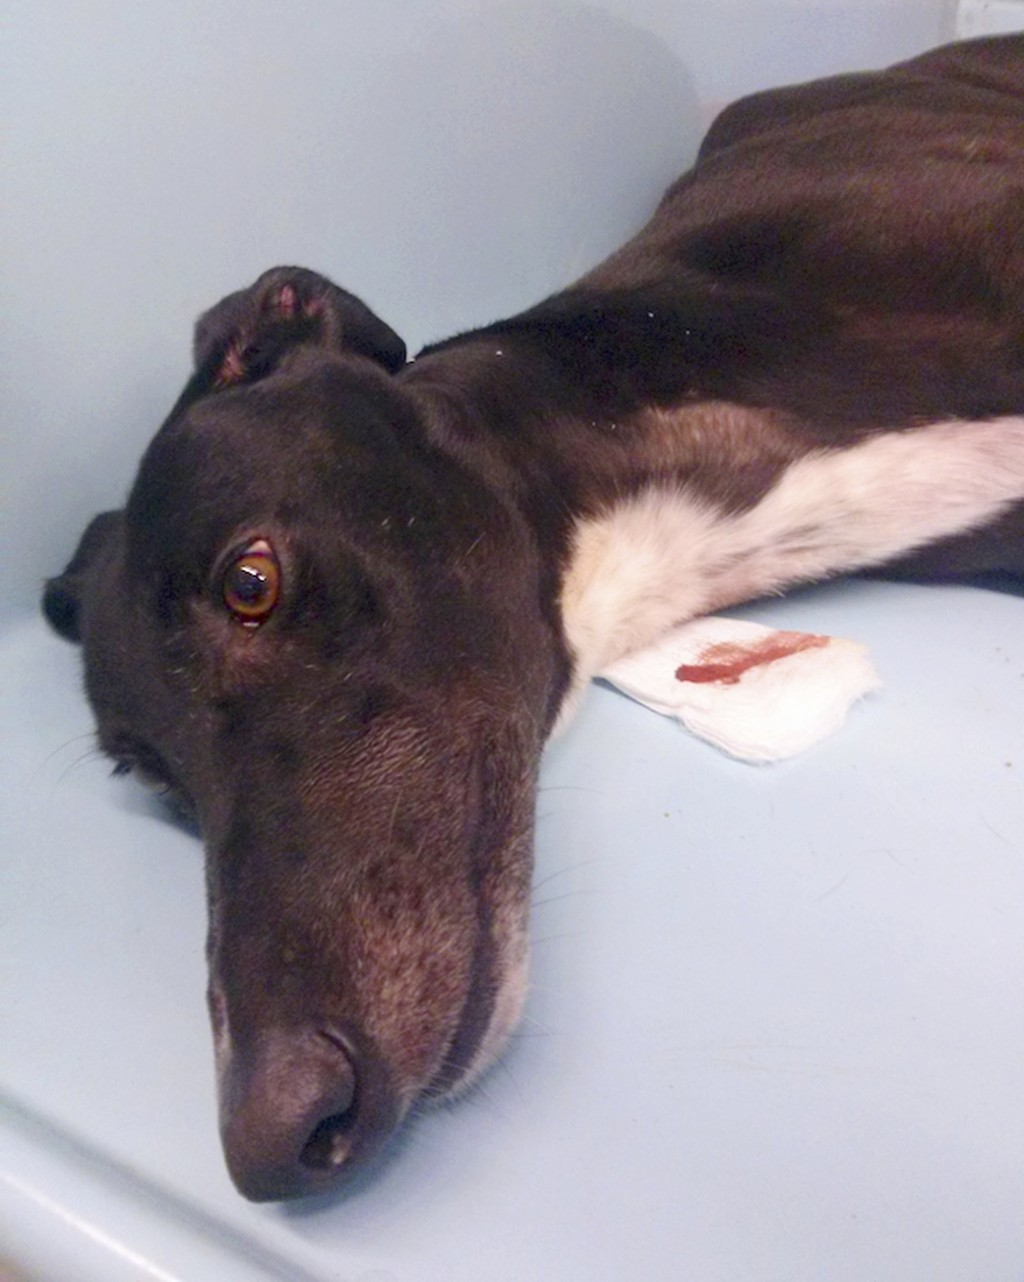 This 2018 photo provided by the animal rights group People for the Ethical Treatment of Animals shows a greyhound after having blood taken at Hemopet